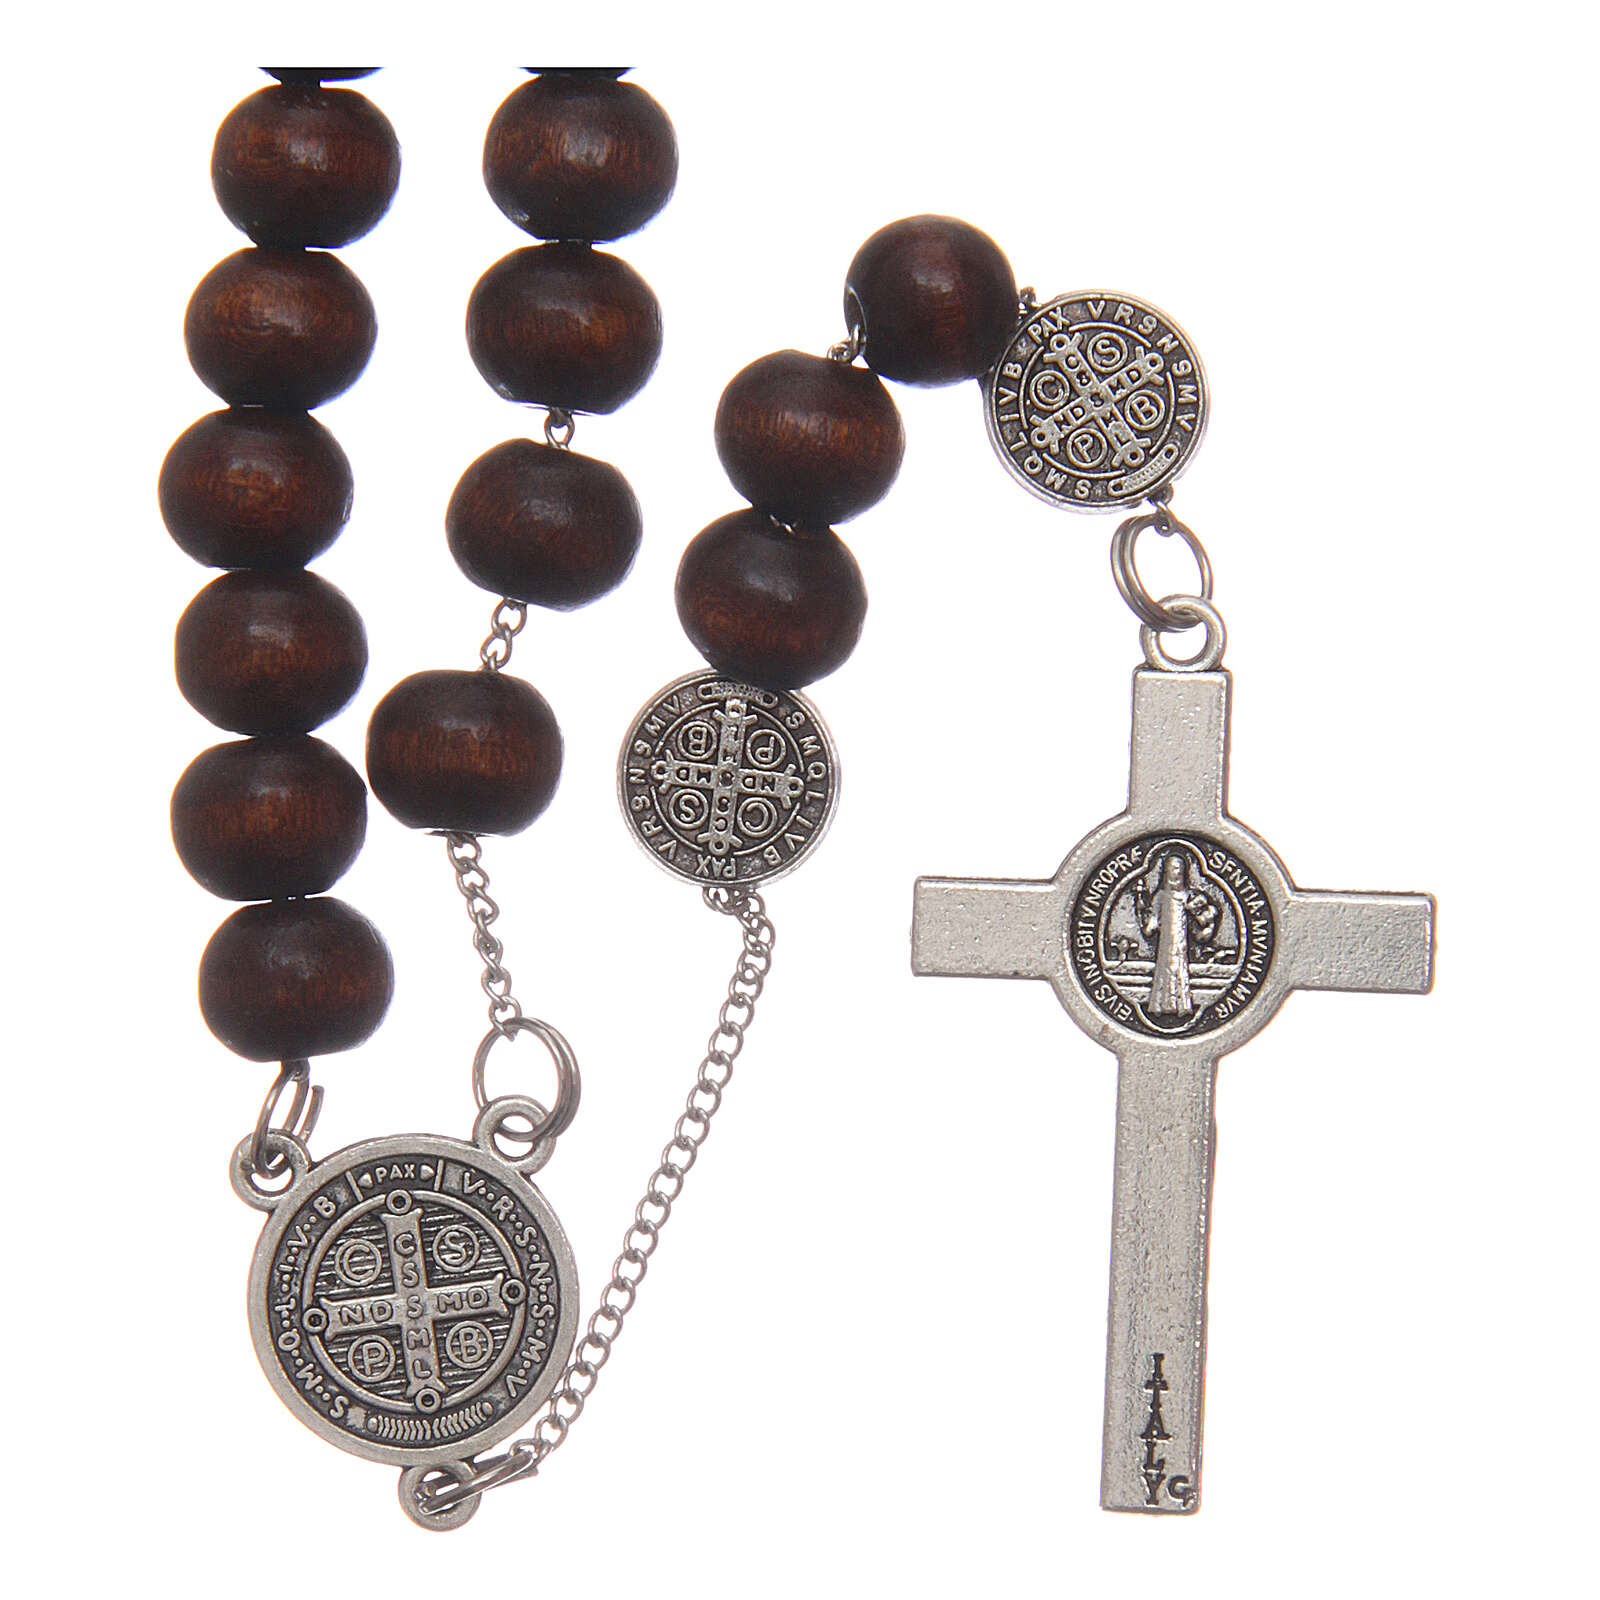 Rosary necklace Saint Benedict brown wood beads 7 mm 4